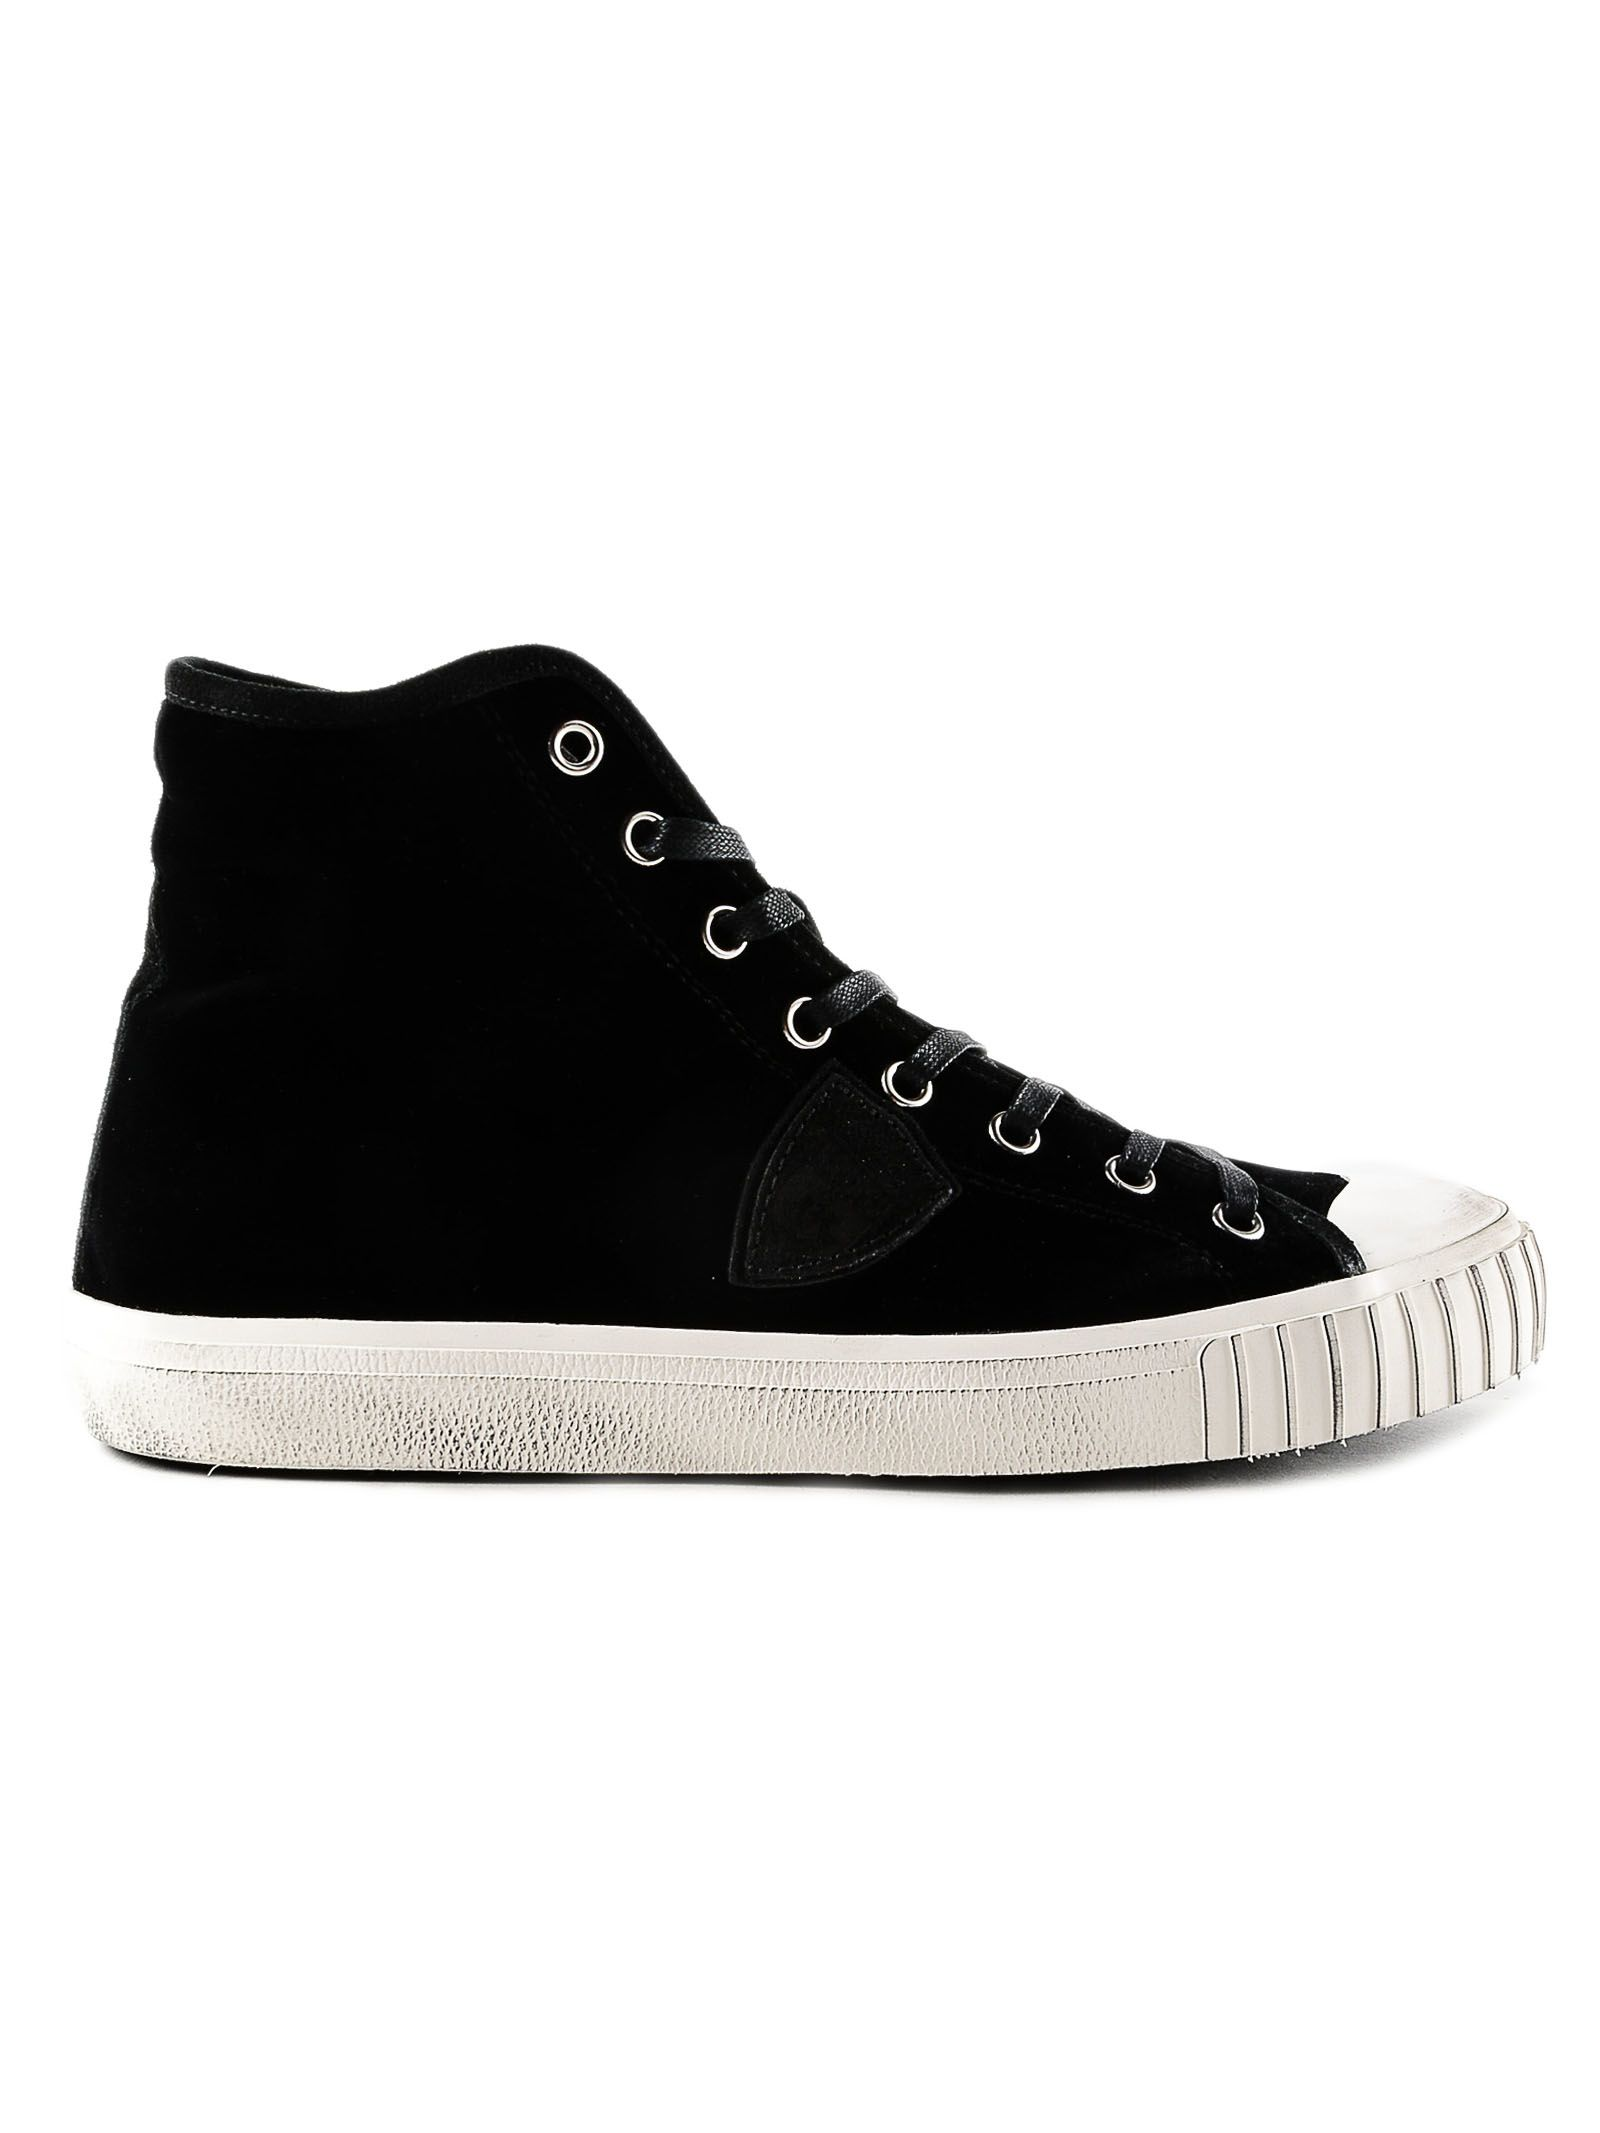 Philippe Model Hi-top Sneakers